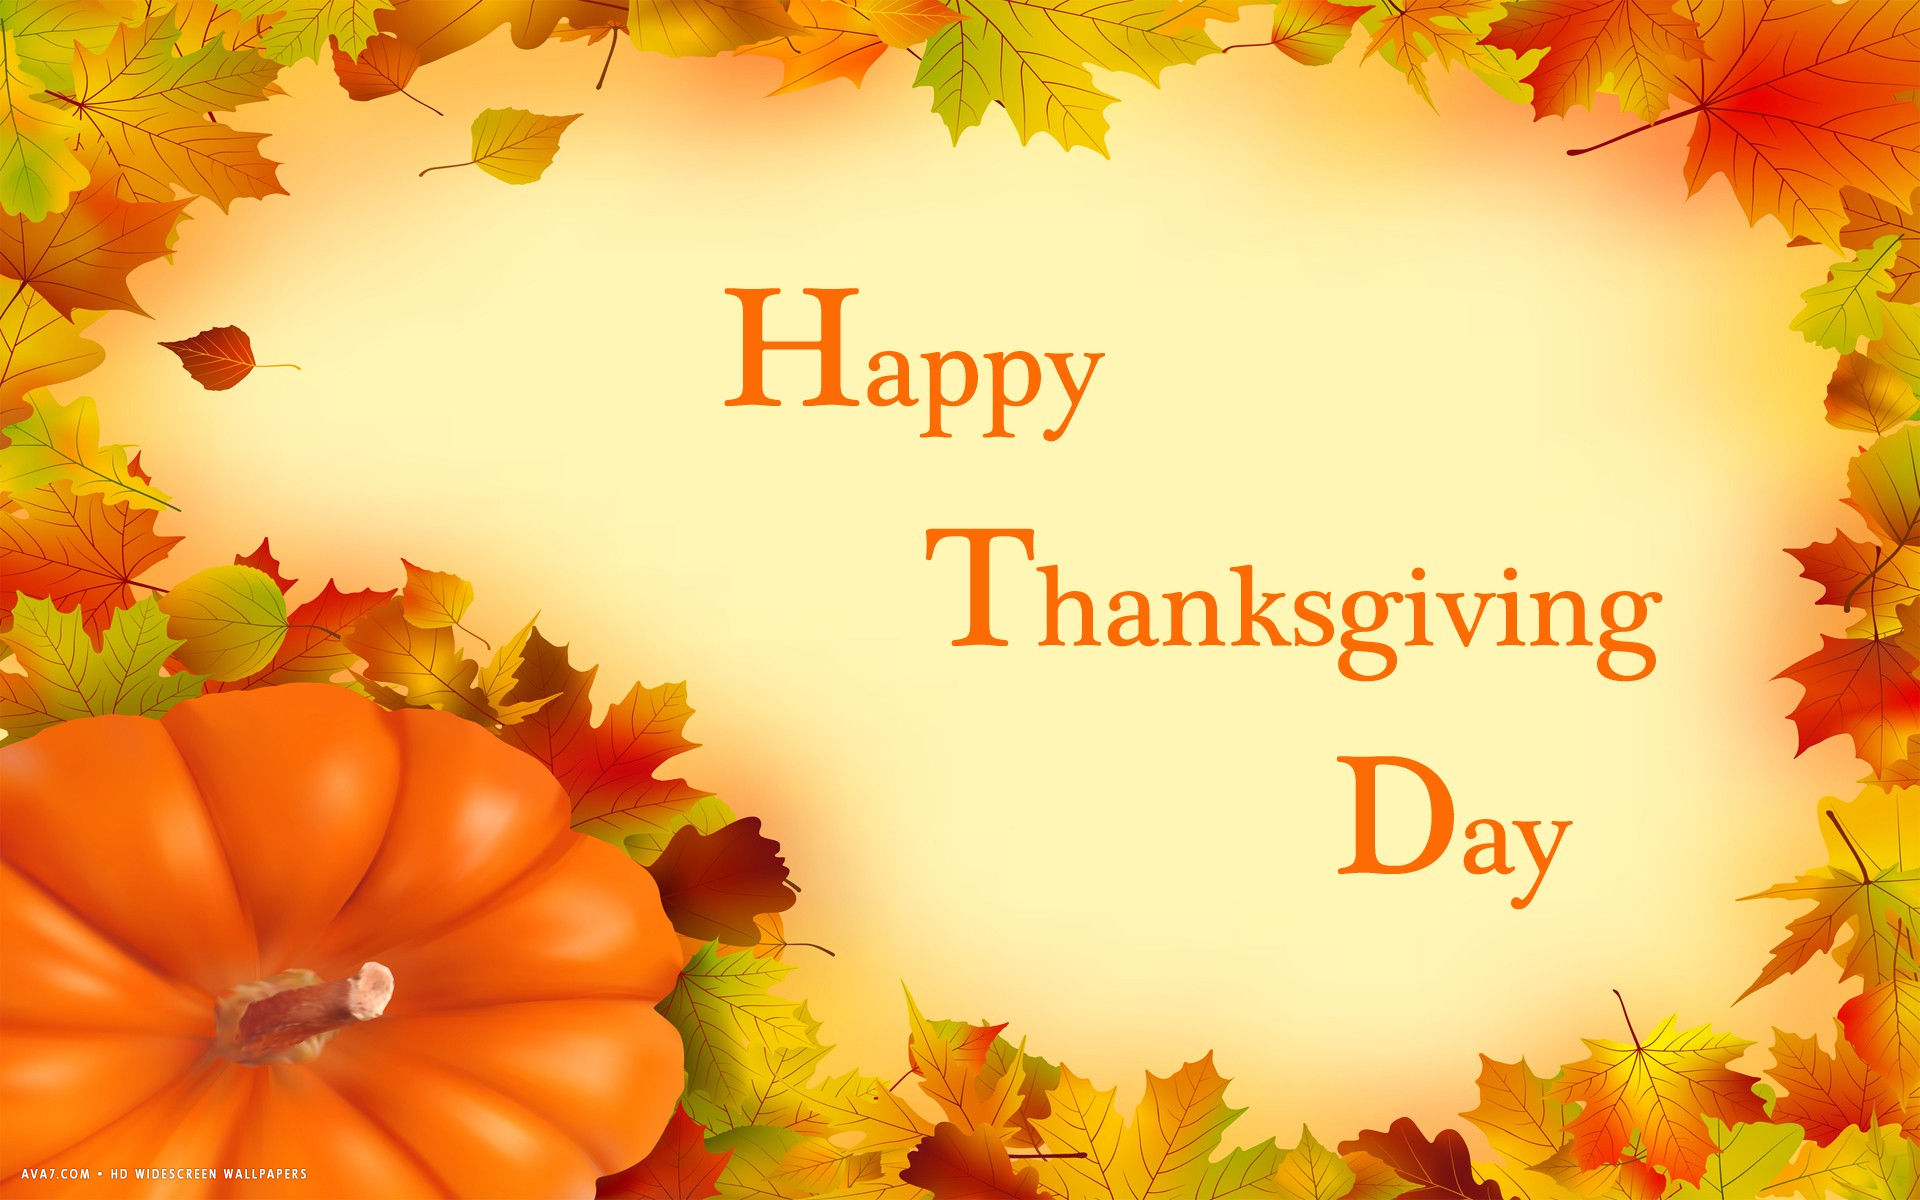 Wishes day Thanksgiving images